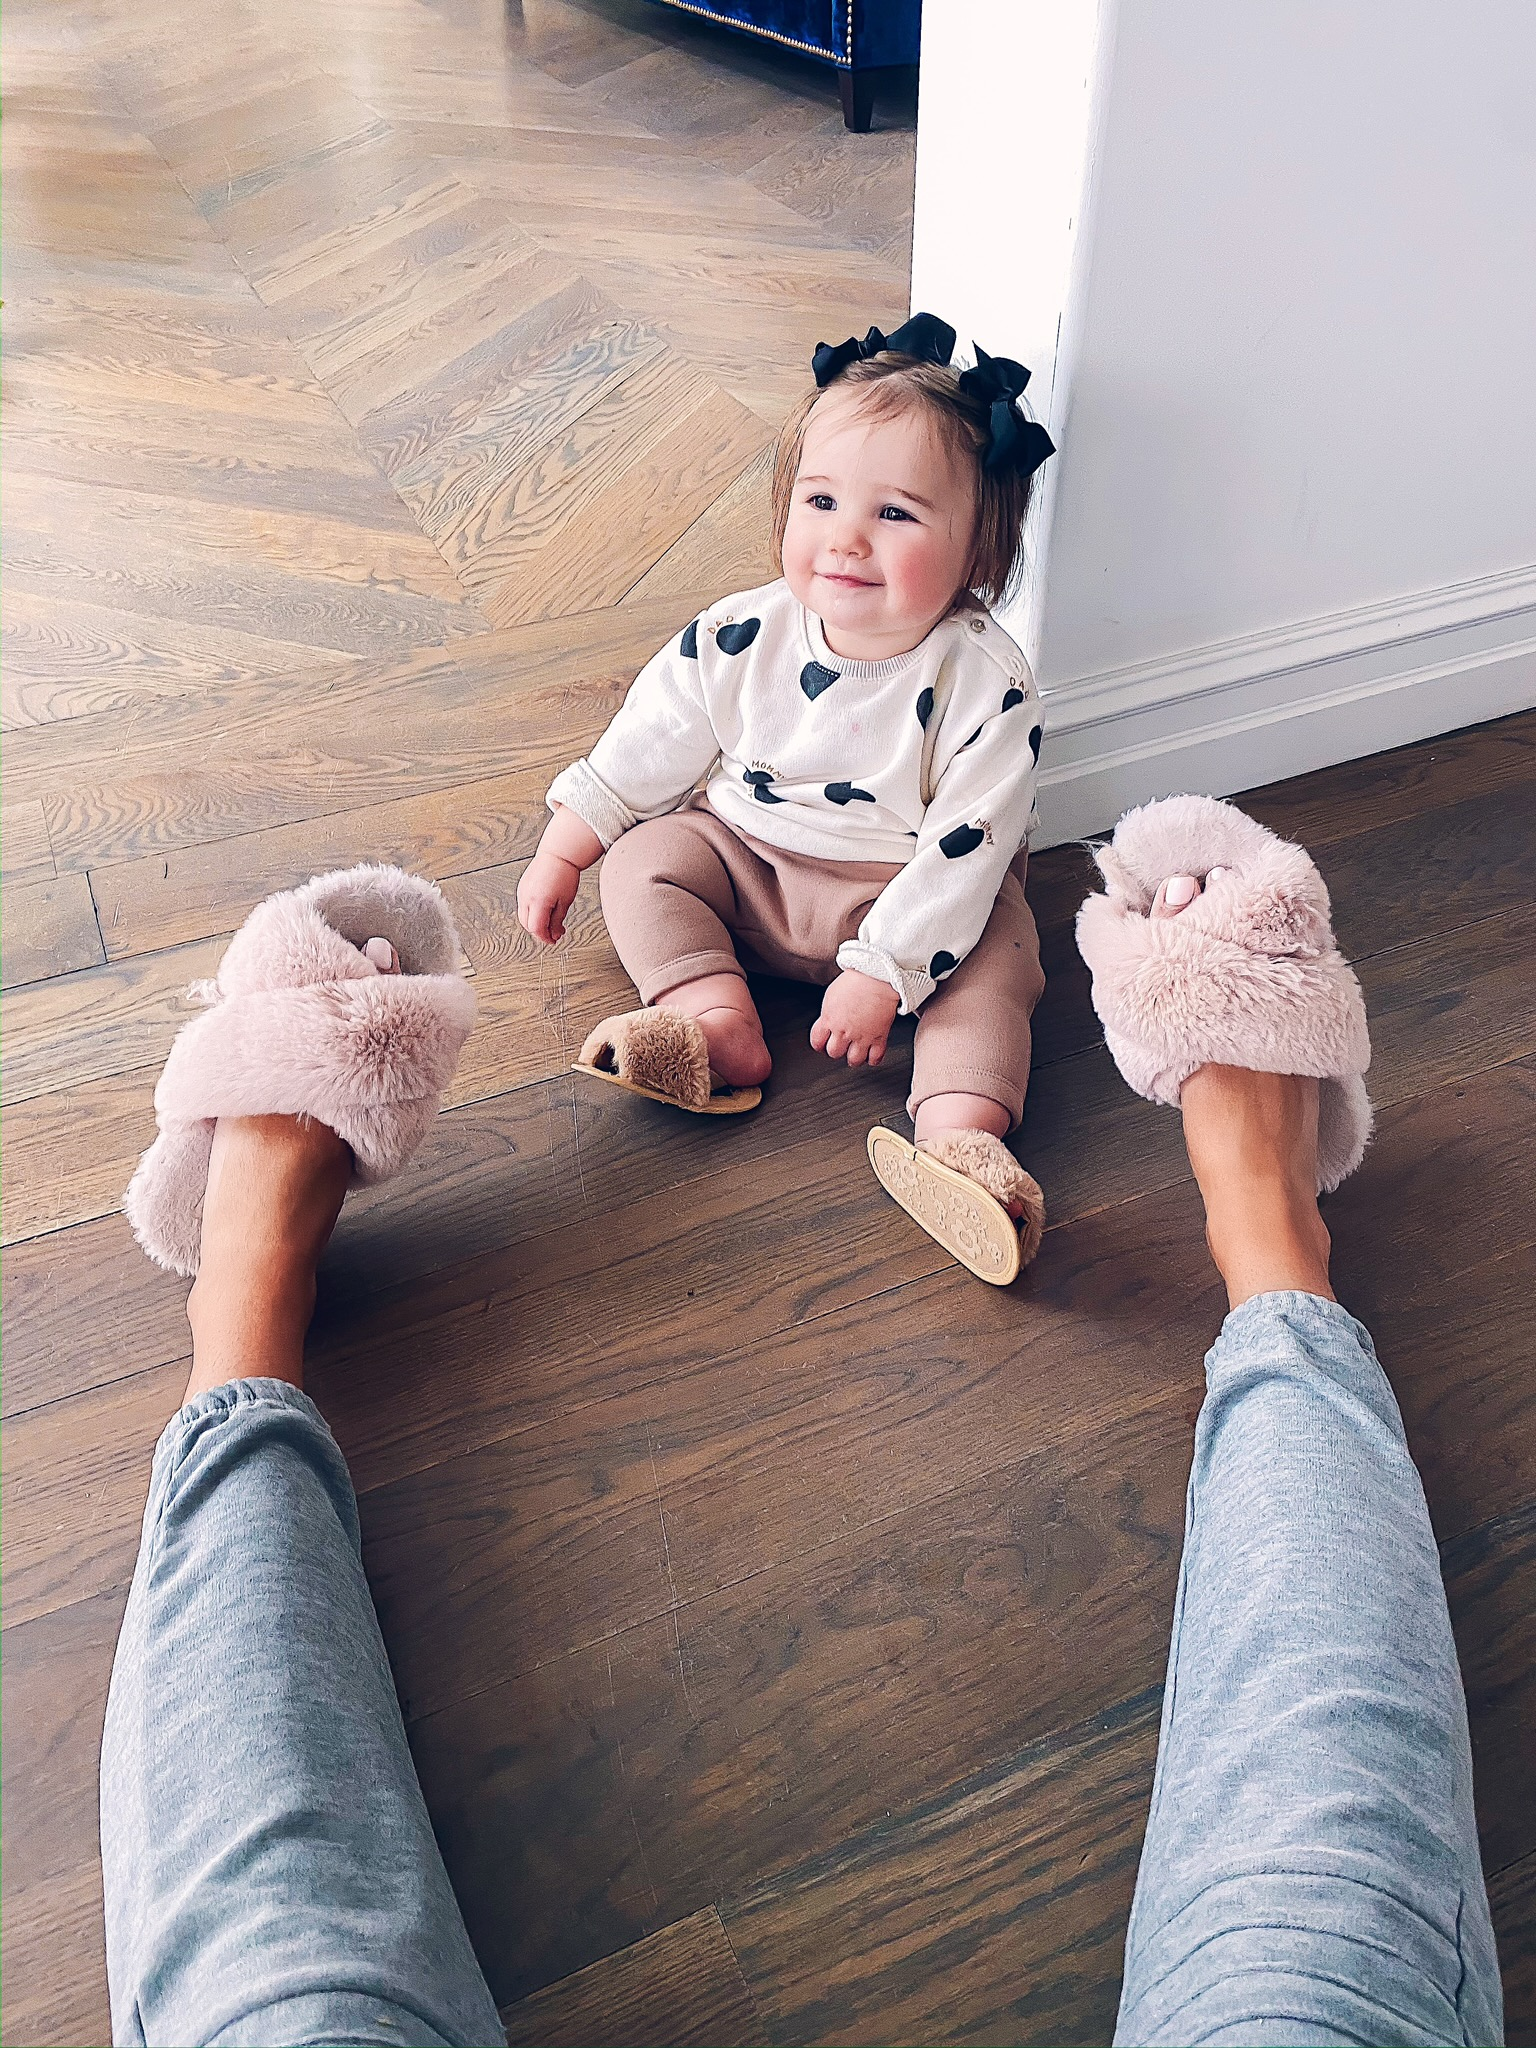 Instagram Recap by popular US lifestyle blog, The Sweetest Thing: image of a mom and daughter sitting on the floor and wearing a Nordstrom Moto Cozy Jogger Pants CHASER, Amazon HALLUCI Women's Cross Band Soft Plush Fleece House Indoor or Outdoor Slippers, Amazon KoroBeauty Hair Bow, and Amazon BLKCERY Baby Sandals for Girls Summer Shoes Faux Fur Slippers.